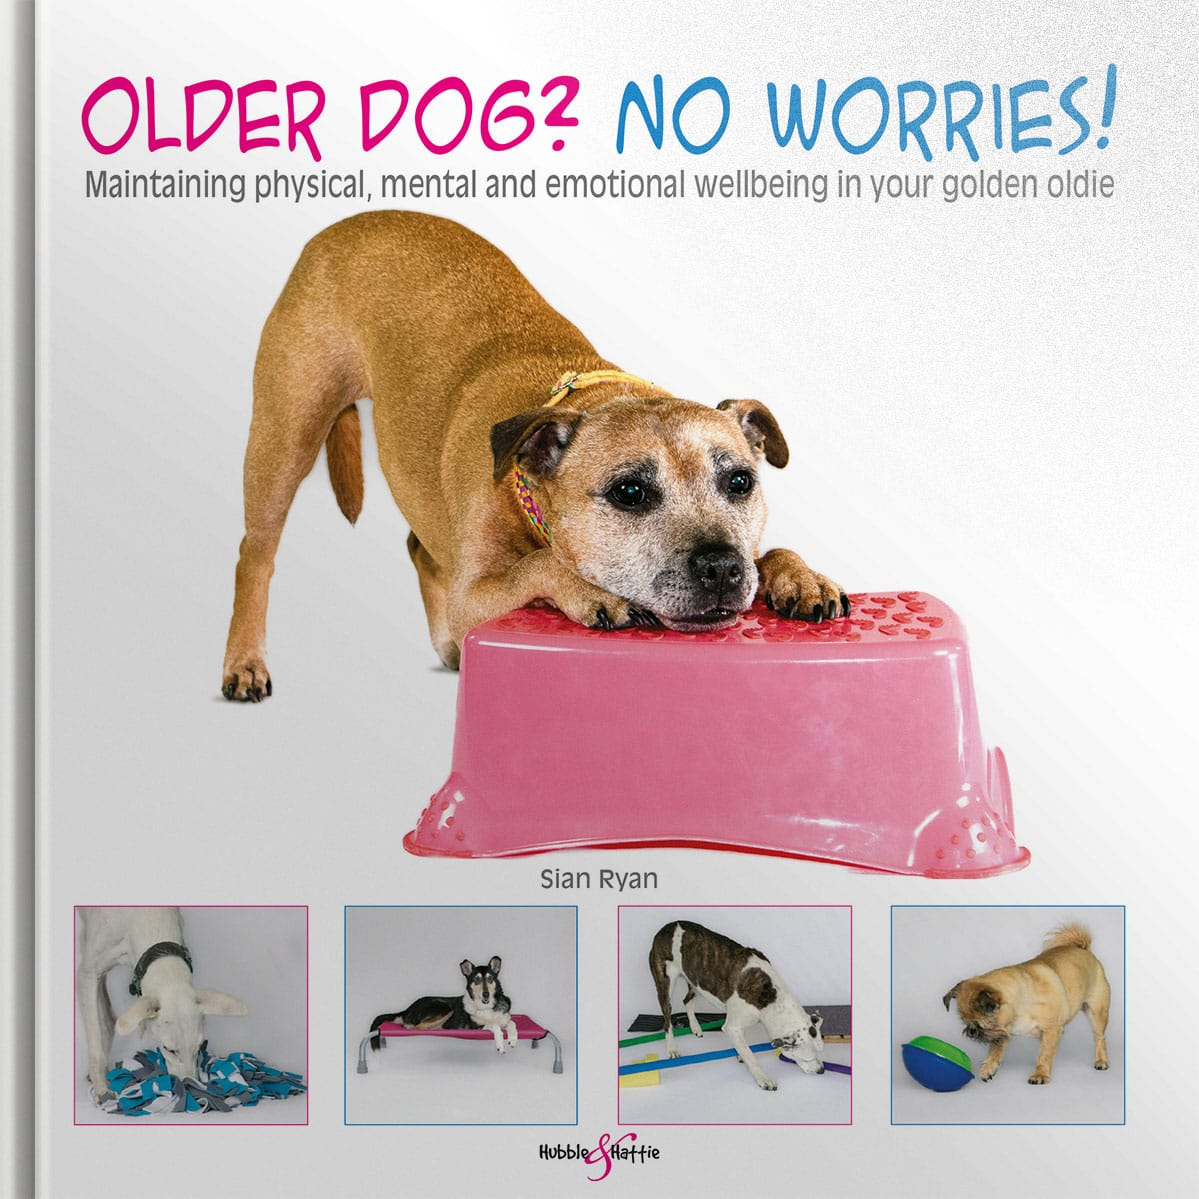 Older dog? No worries! – Maintaining physical, mental and emotional wellbeing in your golden oldie